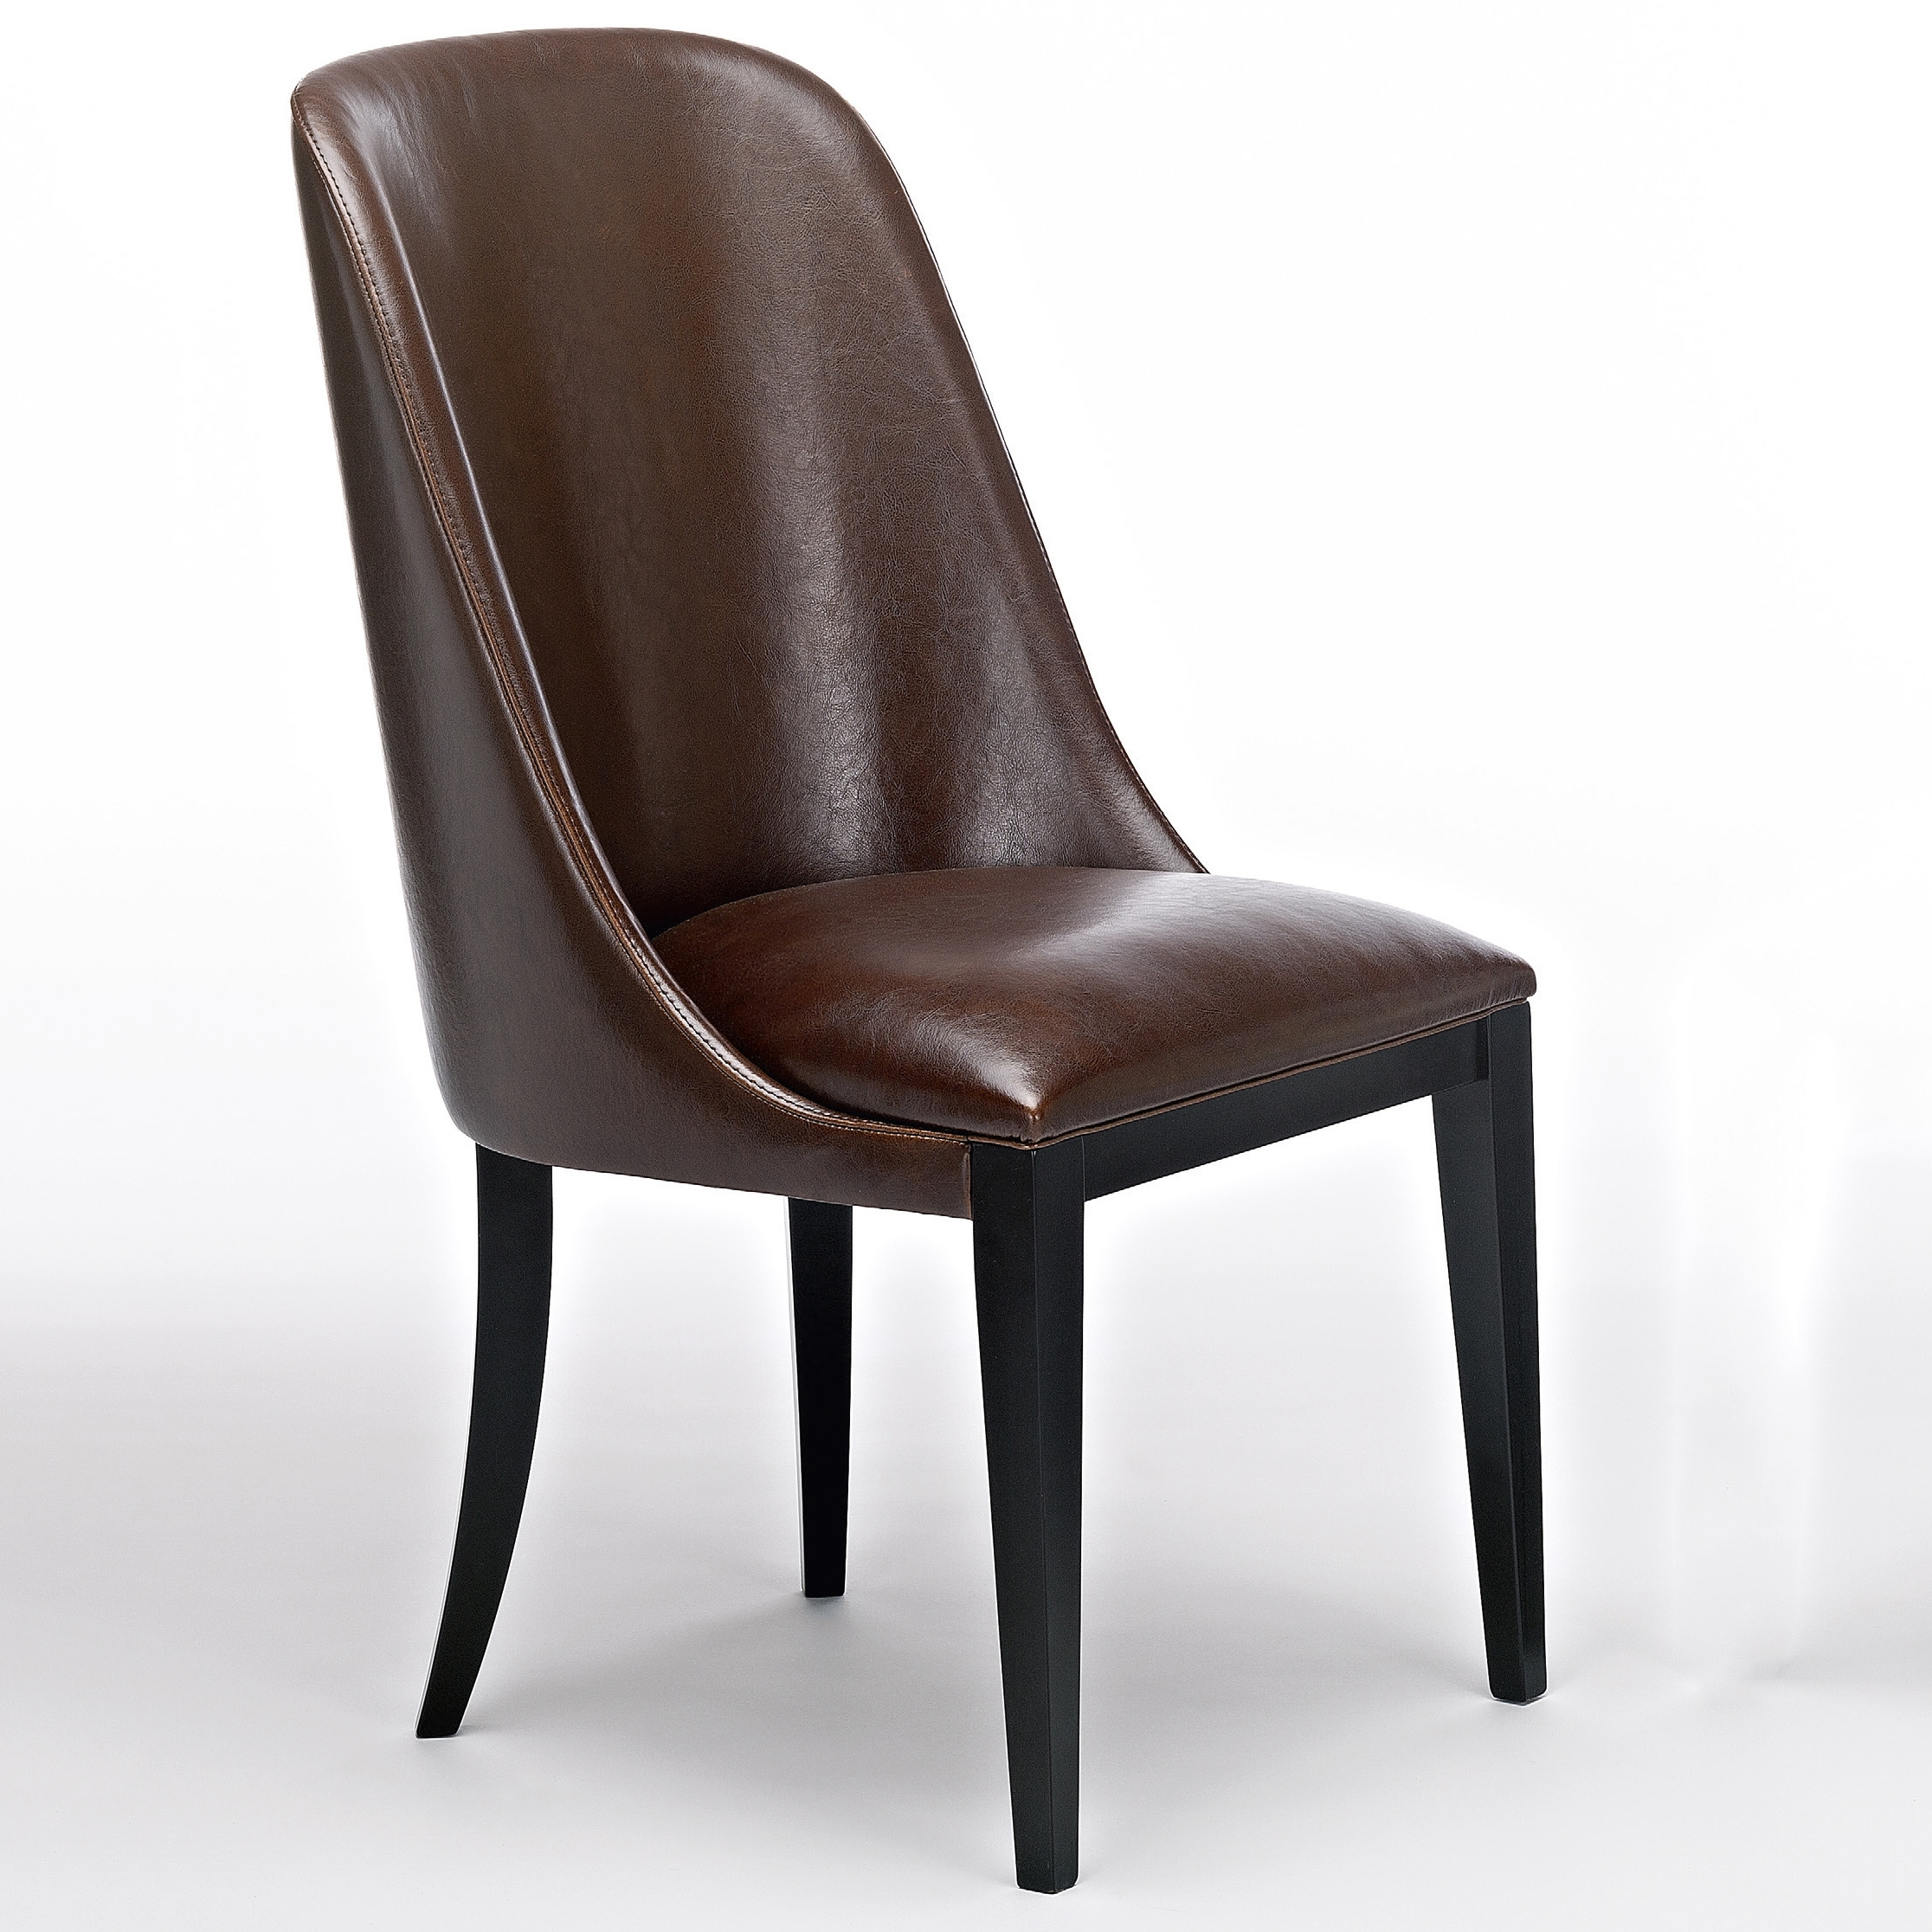 Flamingo Dark Brown Leather Dining Chairs – Robson Furniture With Regard To Well Known Dark Brown Leather Dining Chairs (View 15 of 25)